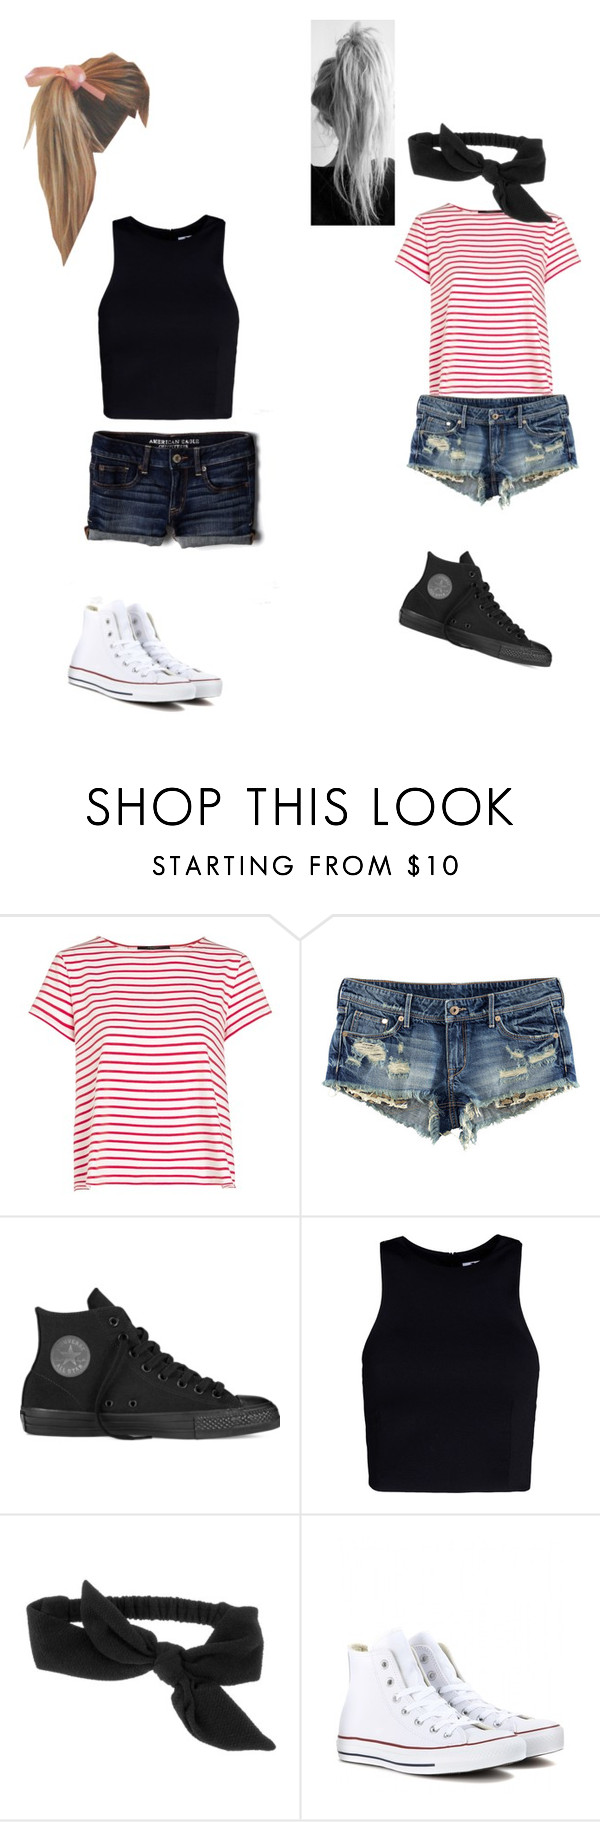 """""""Going to the mall with a friend"""" by jnikirk ❤ liked on Polyvore featuring Weekend Max Mara, H&M, Converse, T By Alexander Wang, Target, American Eagle Outfitters, women's clothing, women's fashion, women and female"""